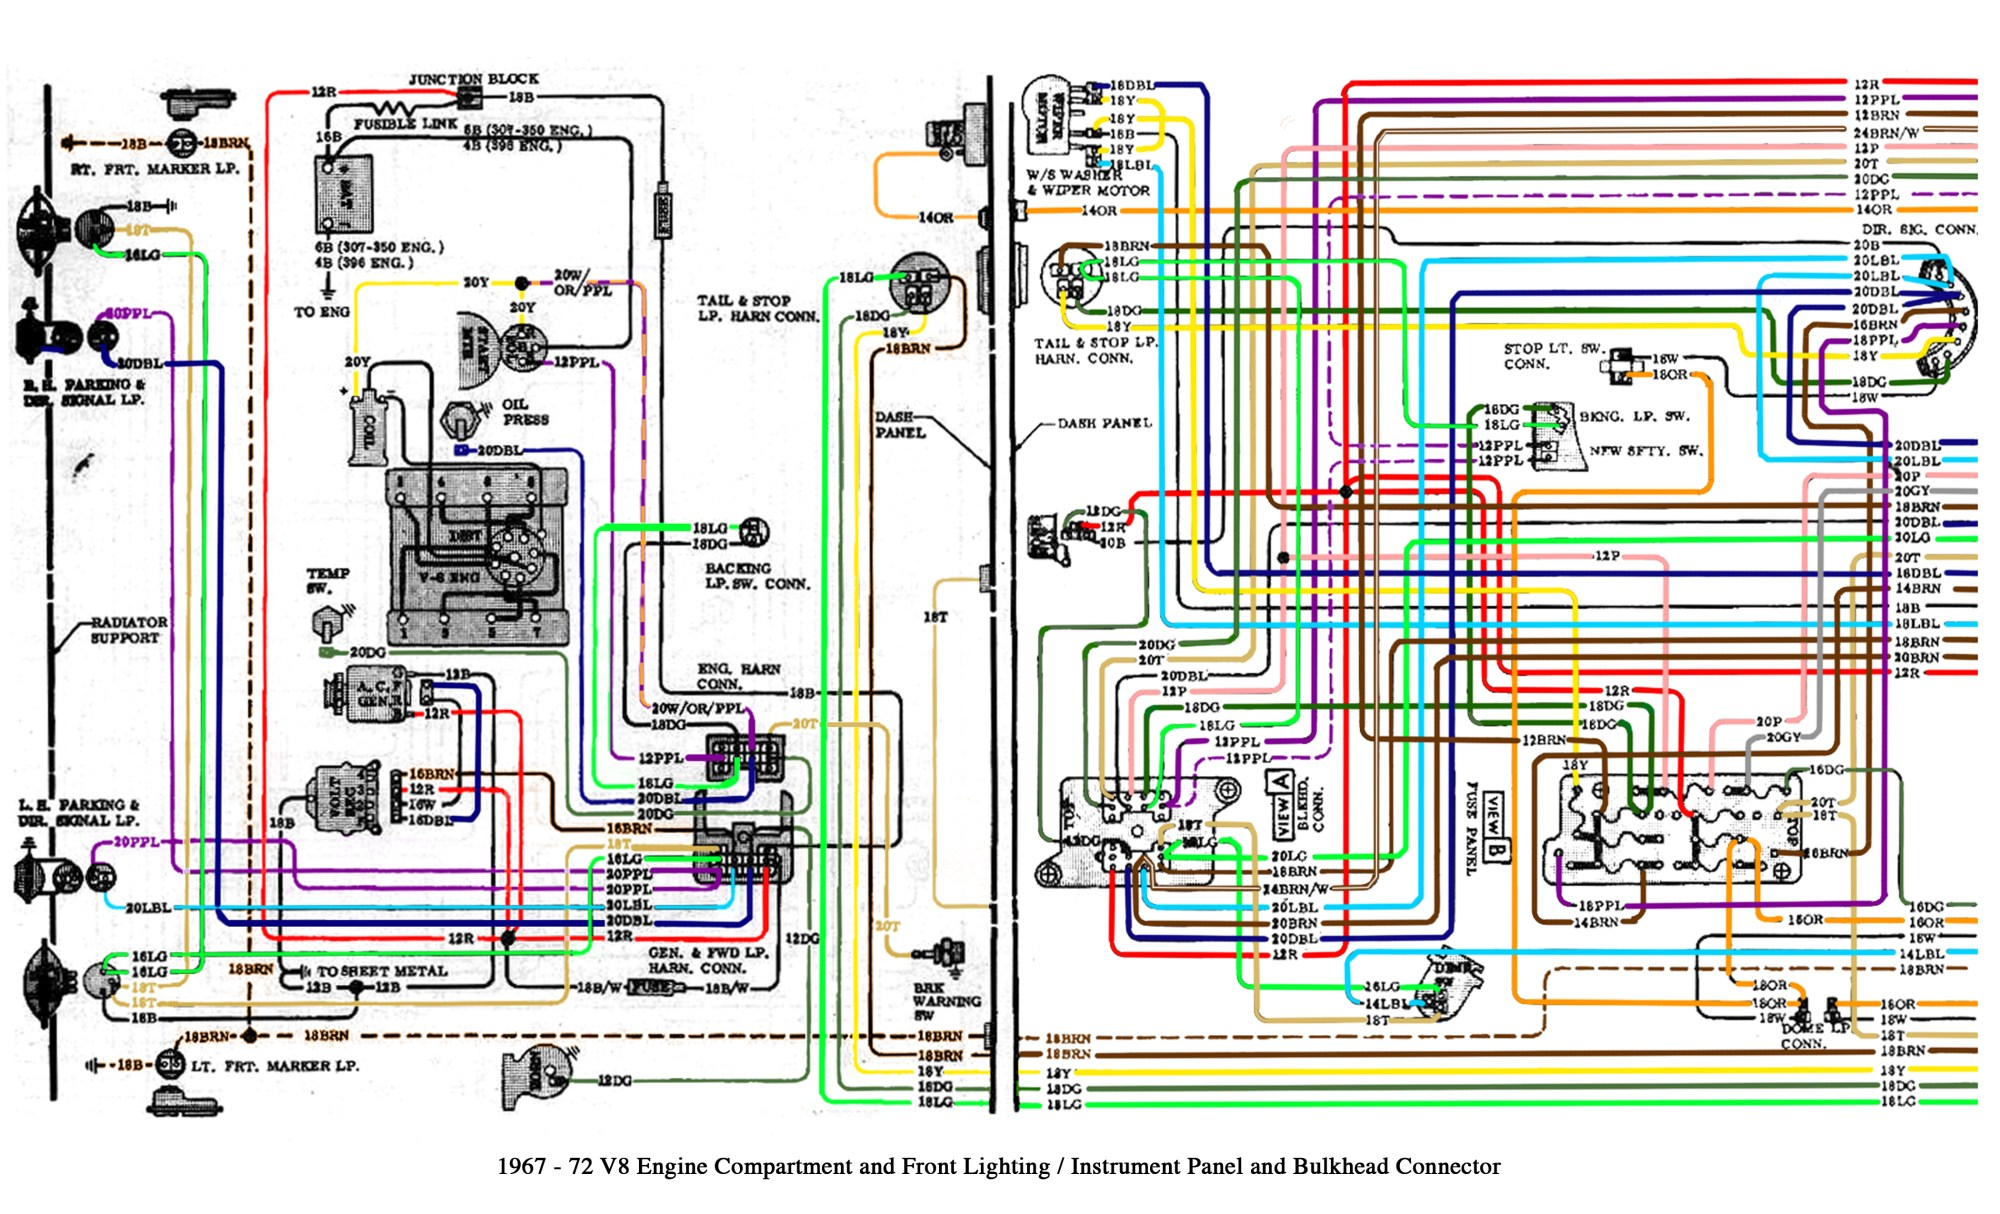 hight resolution of 1967 buick skylark wiring diagram schematics wiring diagrams u2022 rh parntesis co 1968 buick skylark 1970